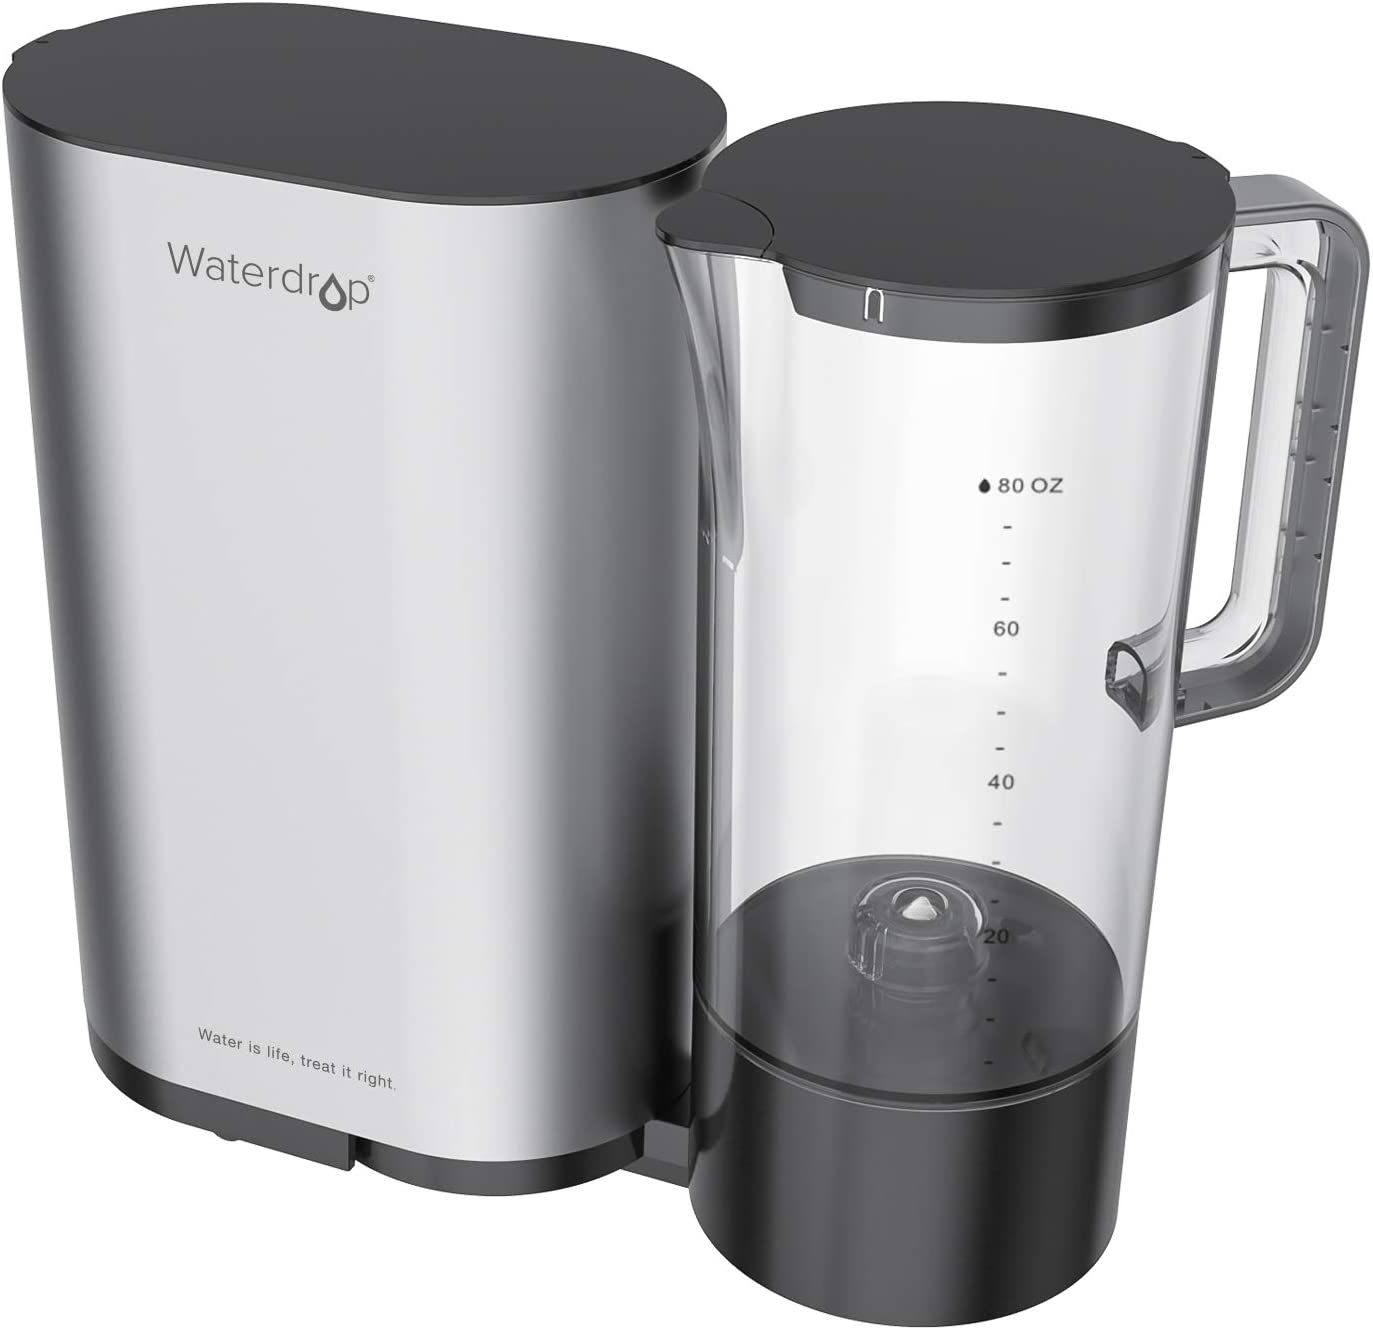 Waterdrop Reverse Osmosis System With water pitcher